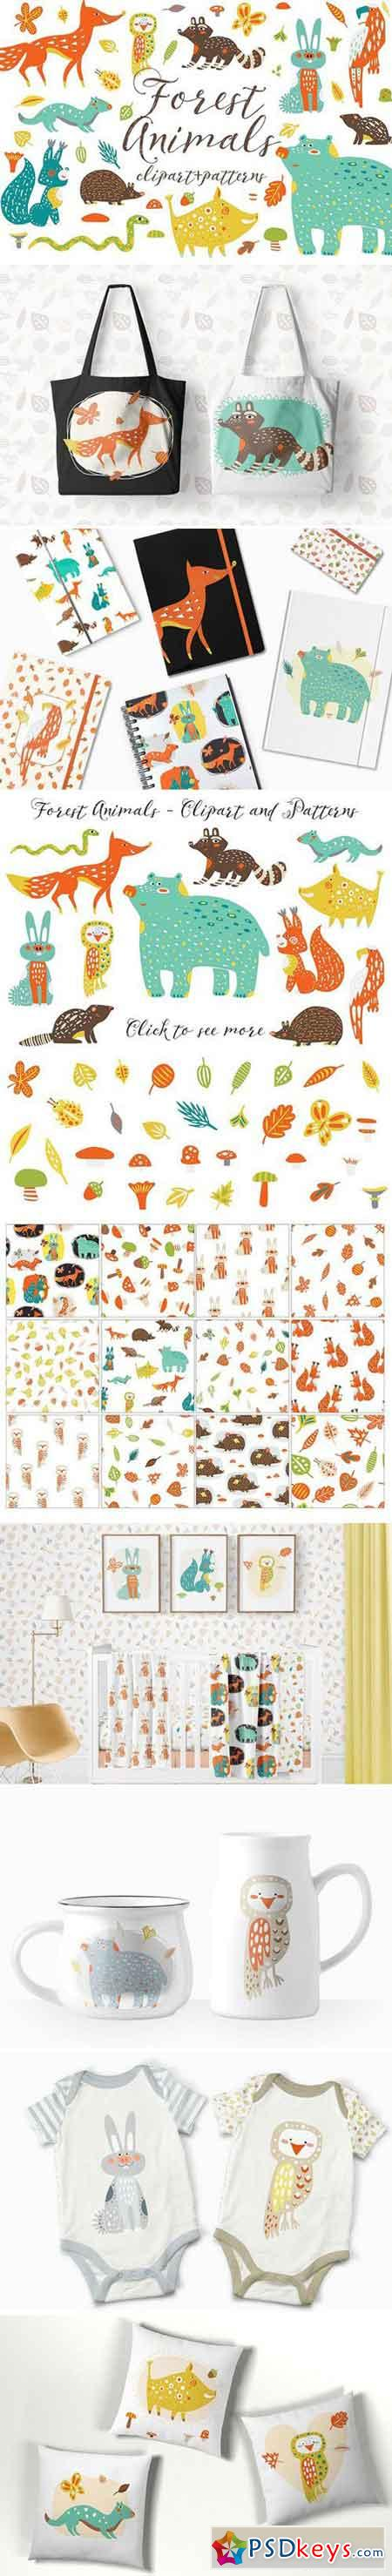 Cute Forest Animals Clipart 1551874